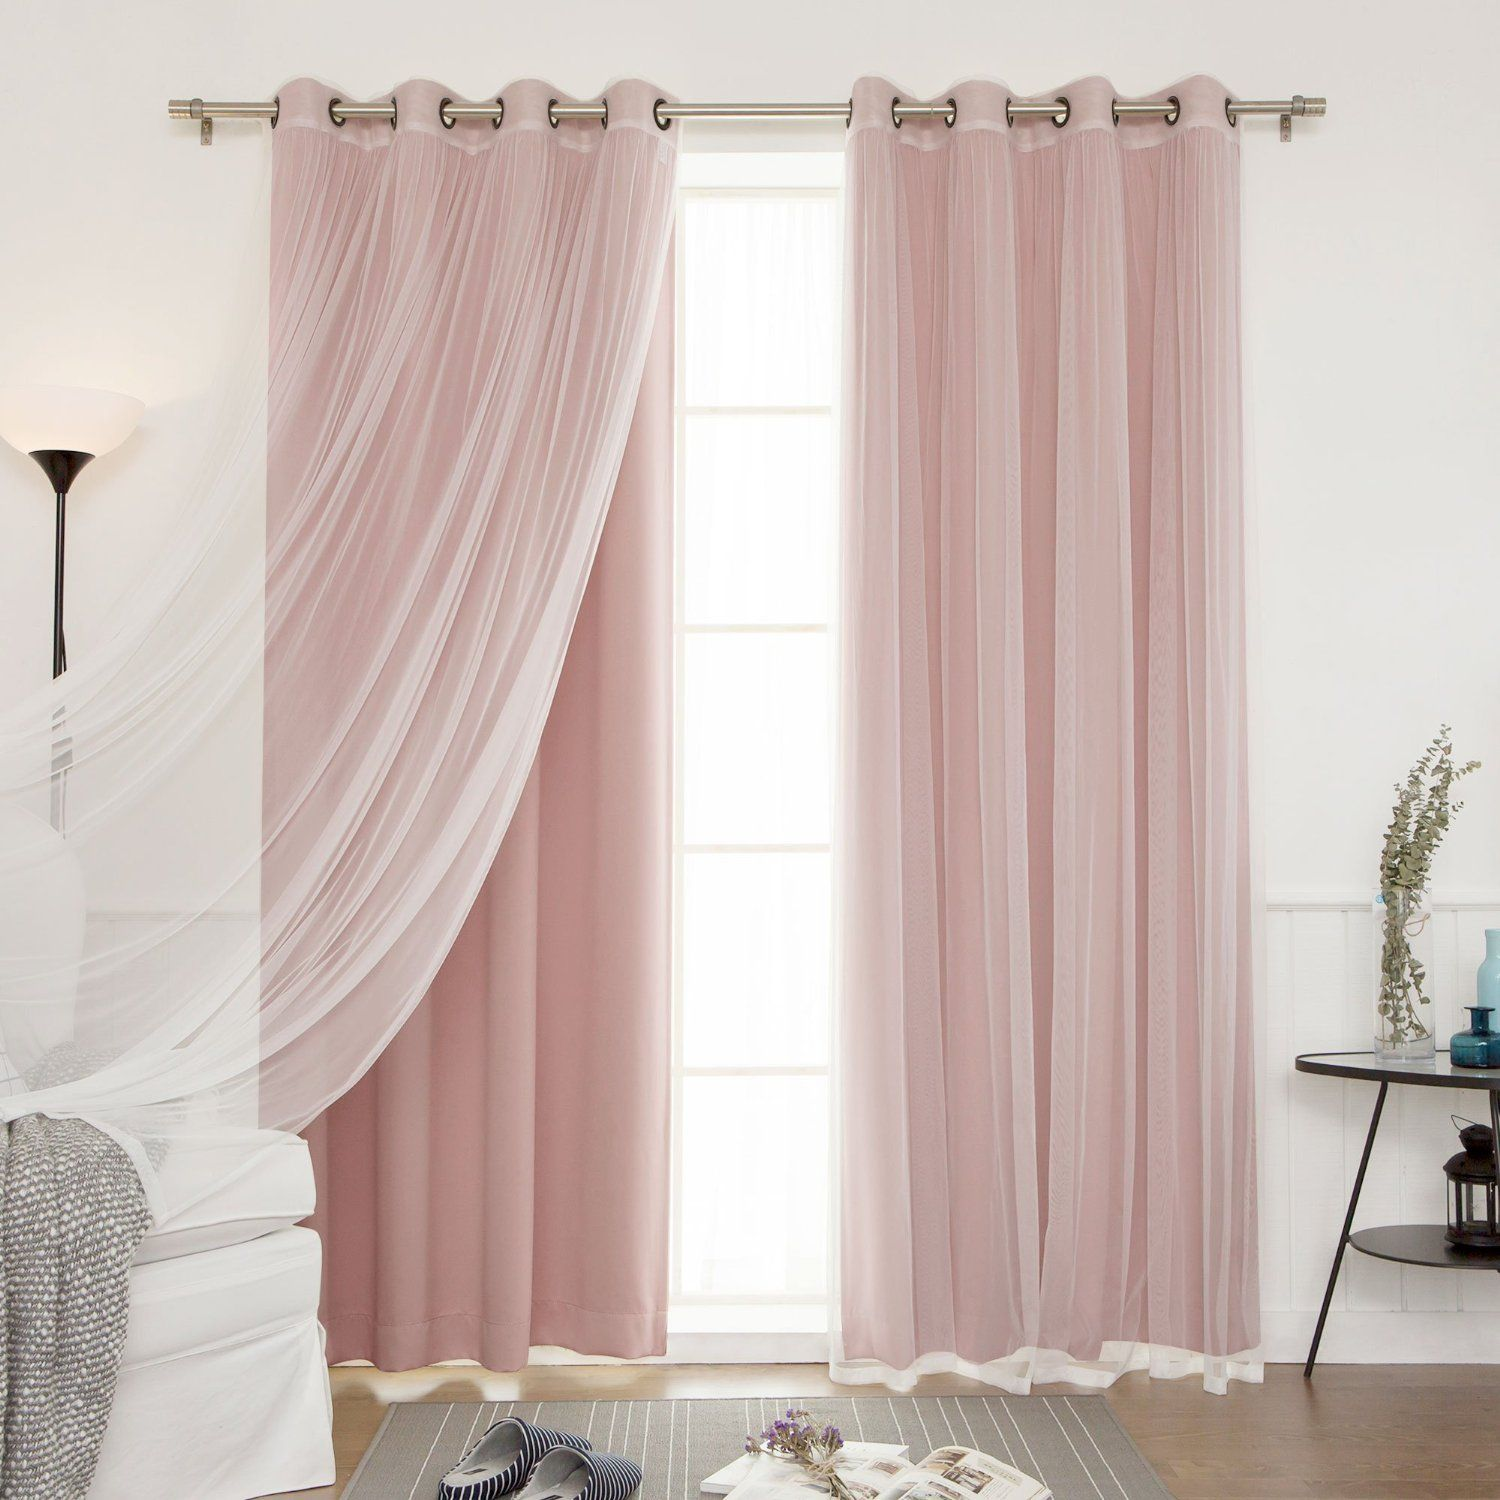 Best Home Fashion Mix Match Tulle Sheer Lace Blackout 4piece Curtain Set